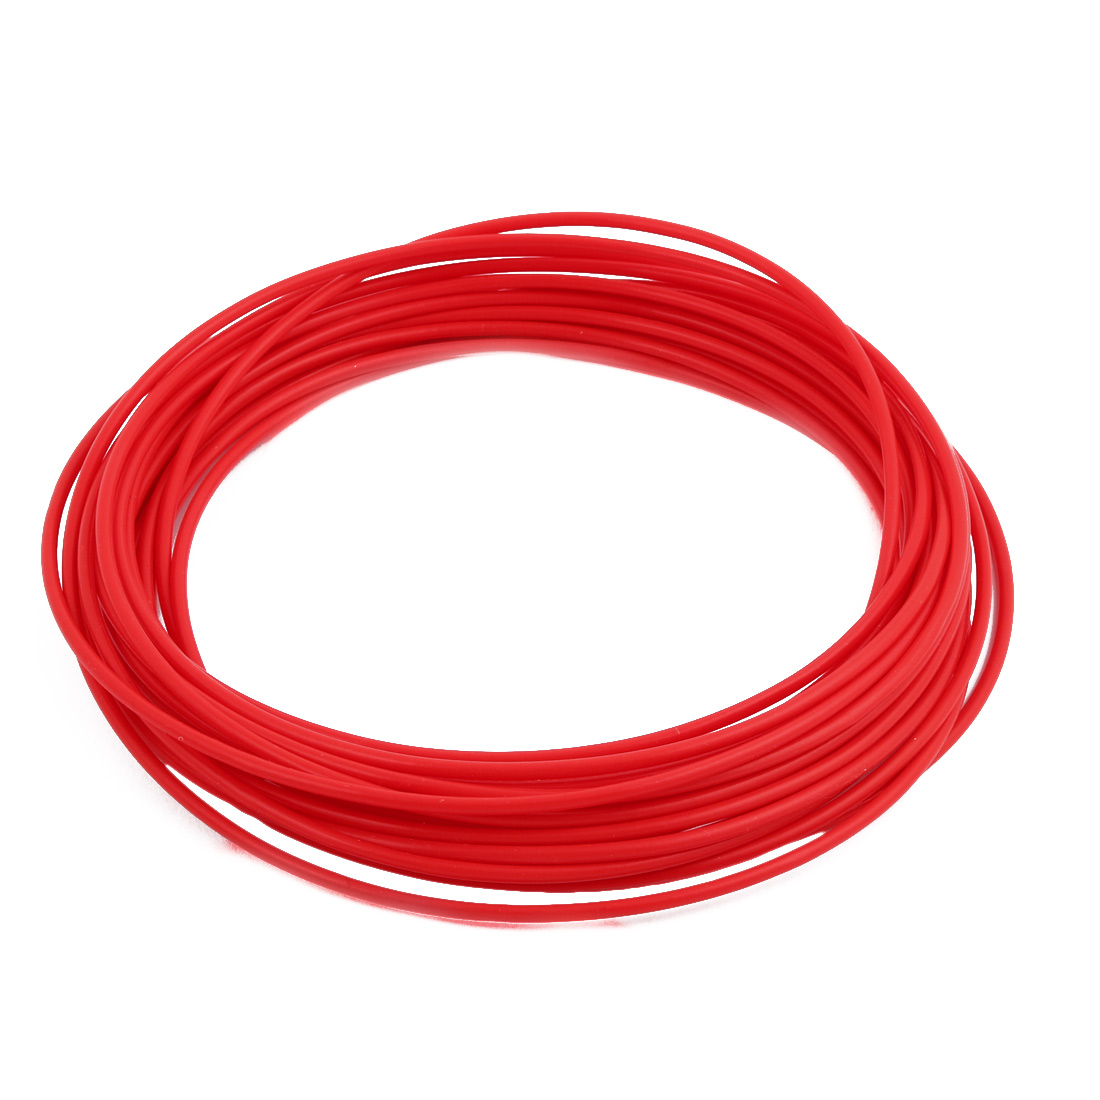 2.69mmx3.09mm PTFE Resistant High Temperature Red Tubing 10 Meters 32.8Ft